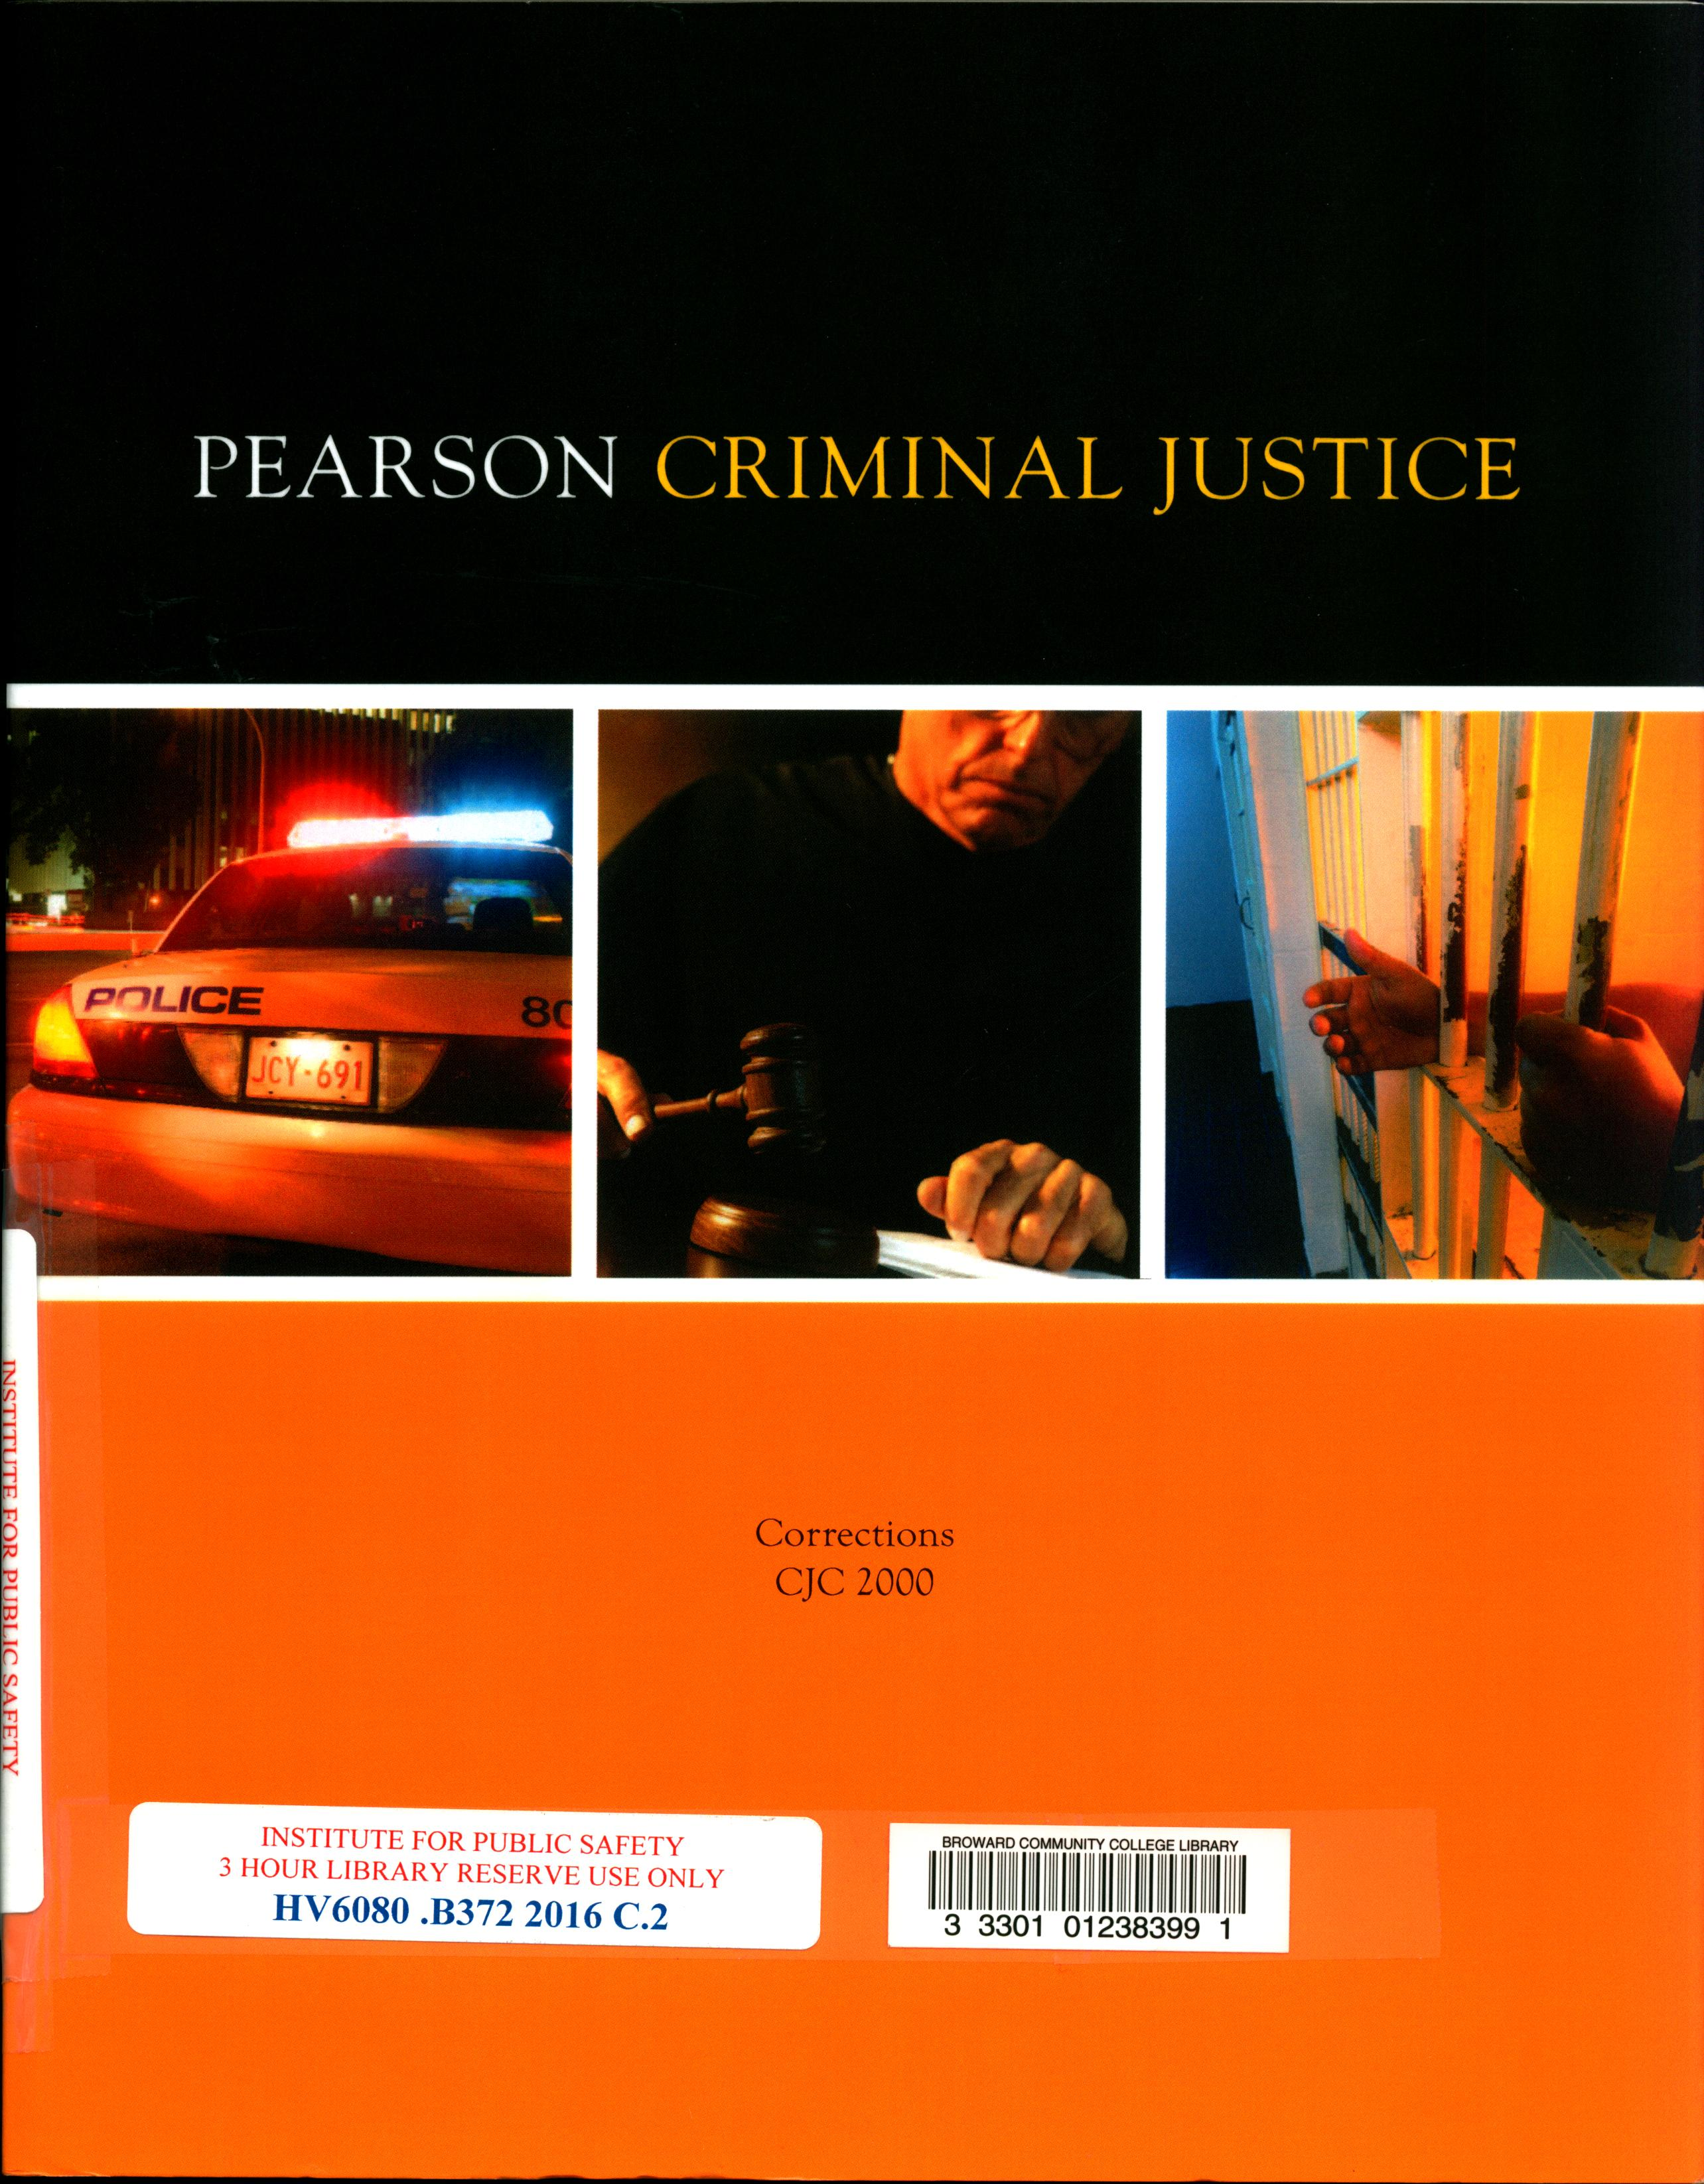 Cover art of Criminal Justice Correction